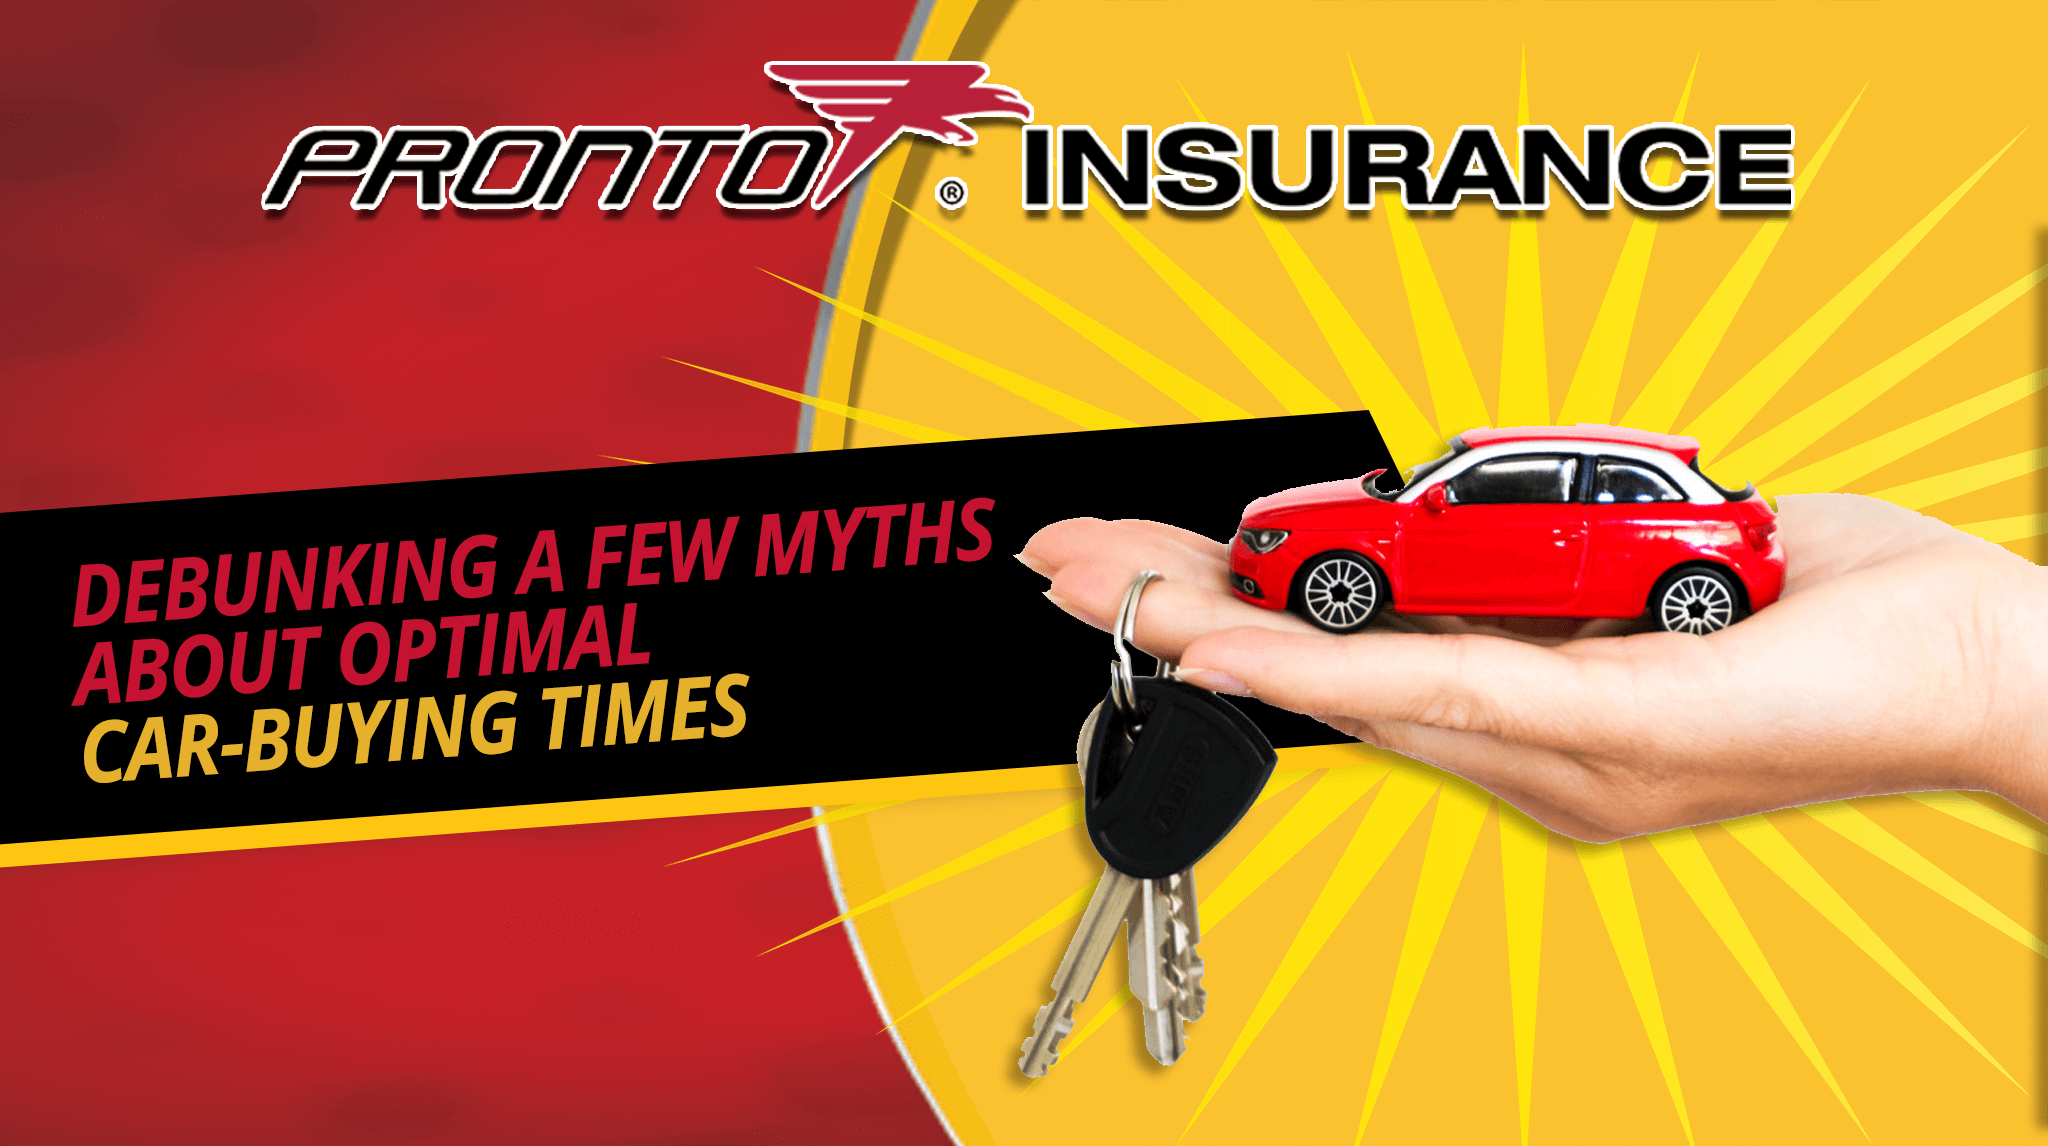 Debunking a Few Myths About Optimal Car-Buying Times